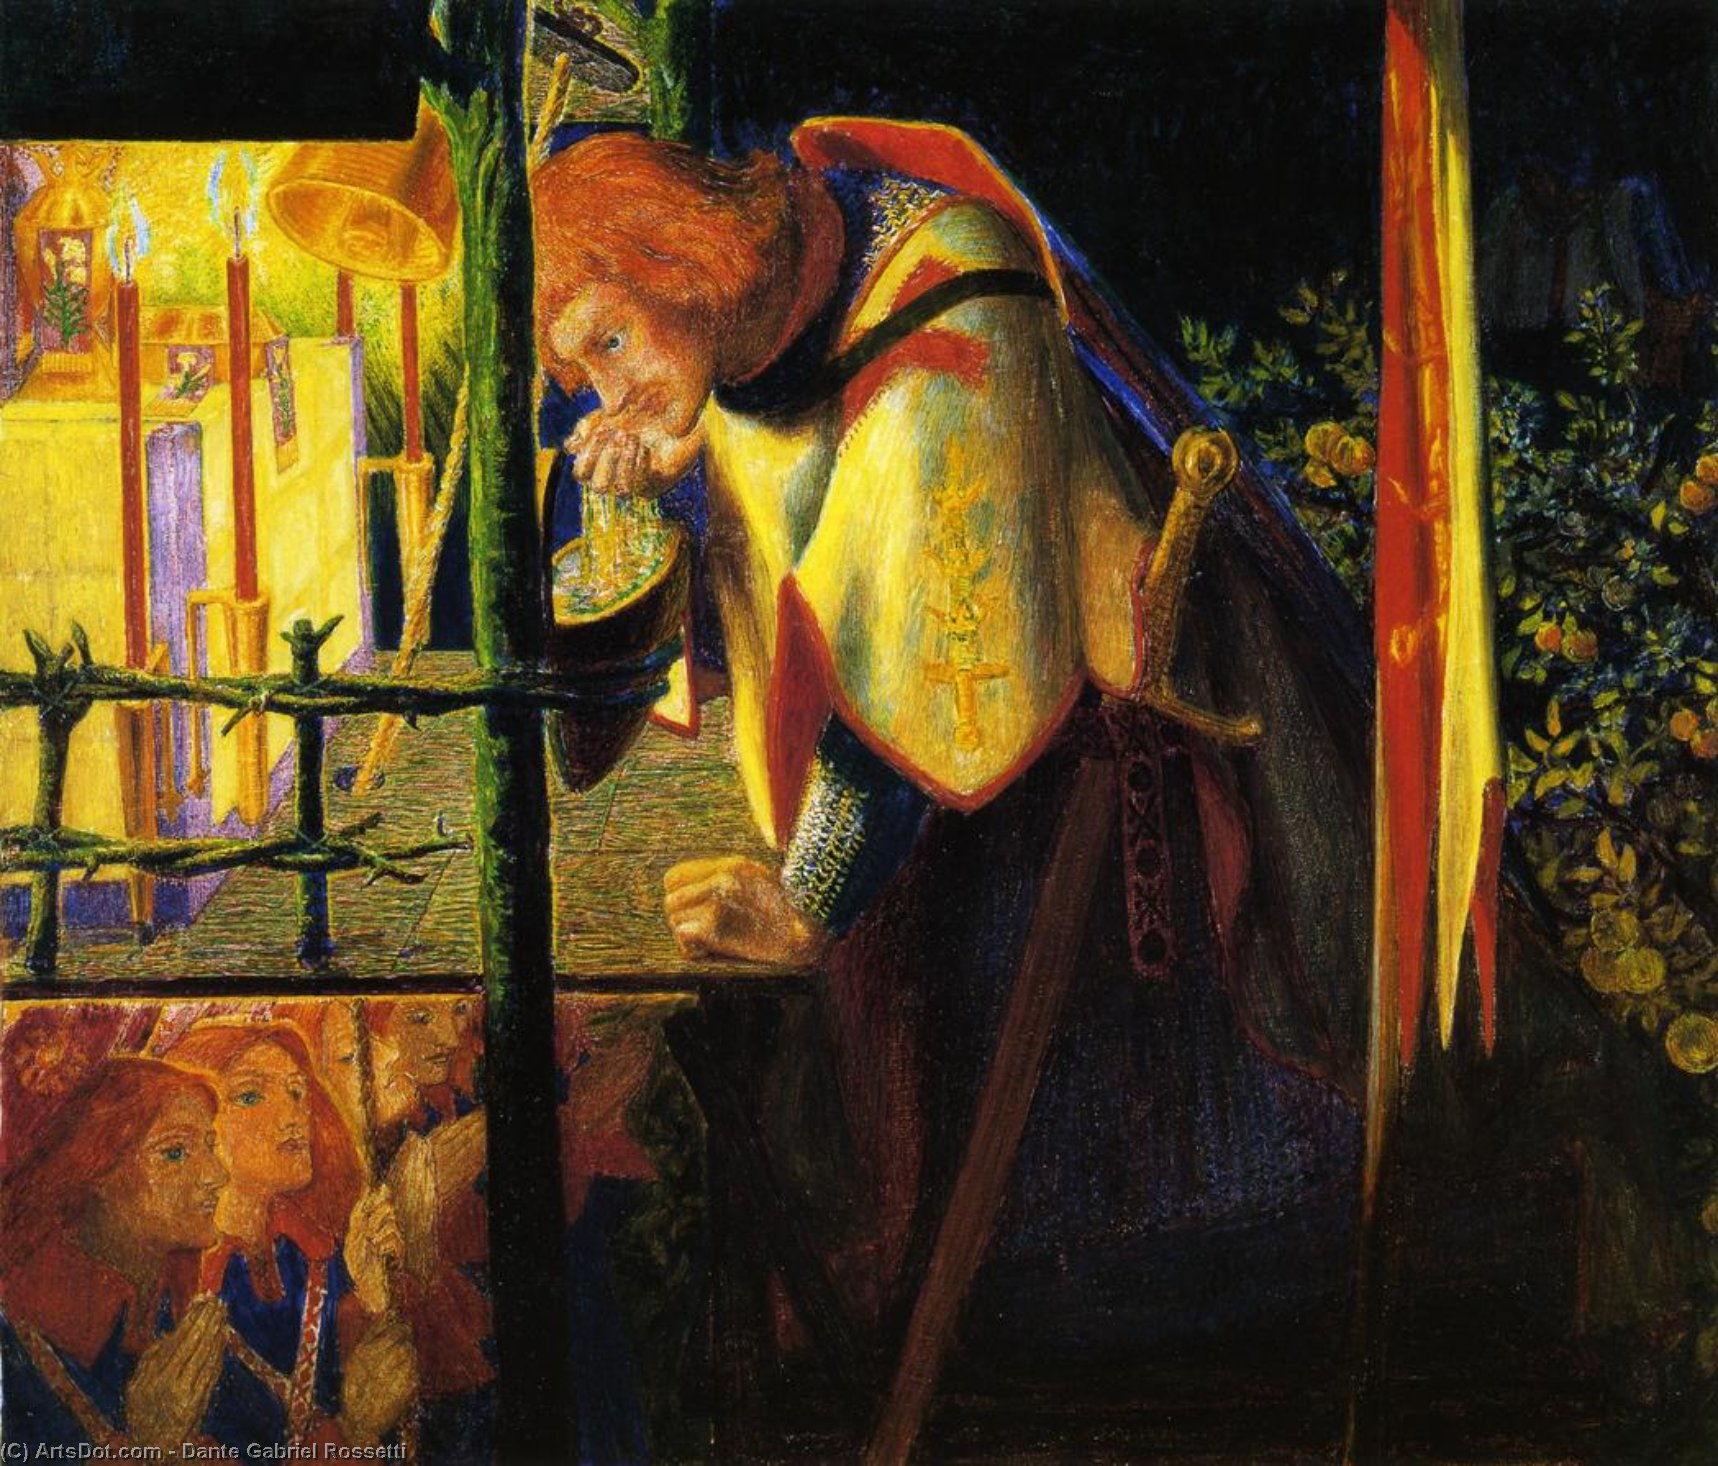 Sir Galahad at the Ruined Chapel, Watercolour by Dante Gabriel Rossetti (1828-1882, United Kingdom)